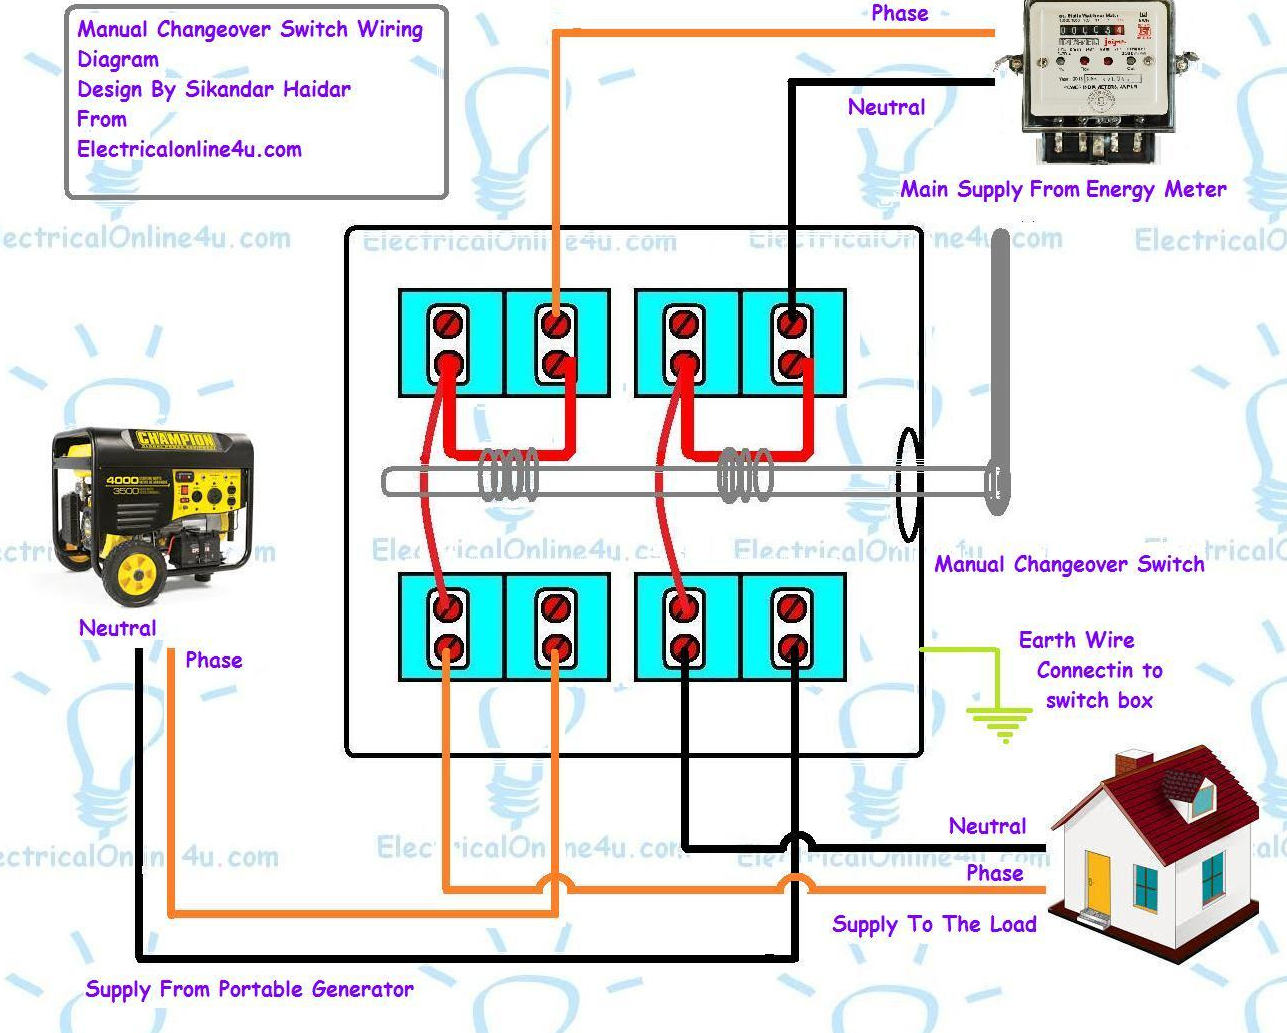 Manual changeover switch wiring diagram for portable generator | m ...